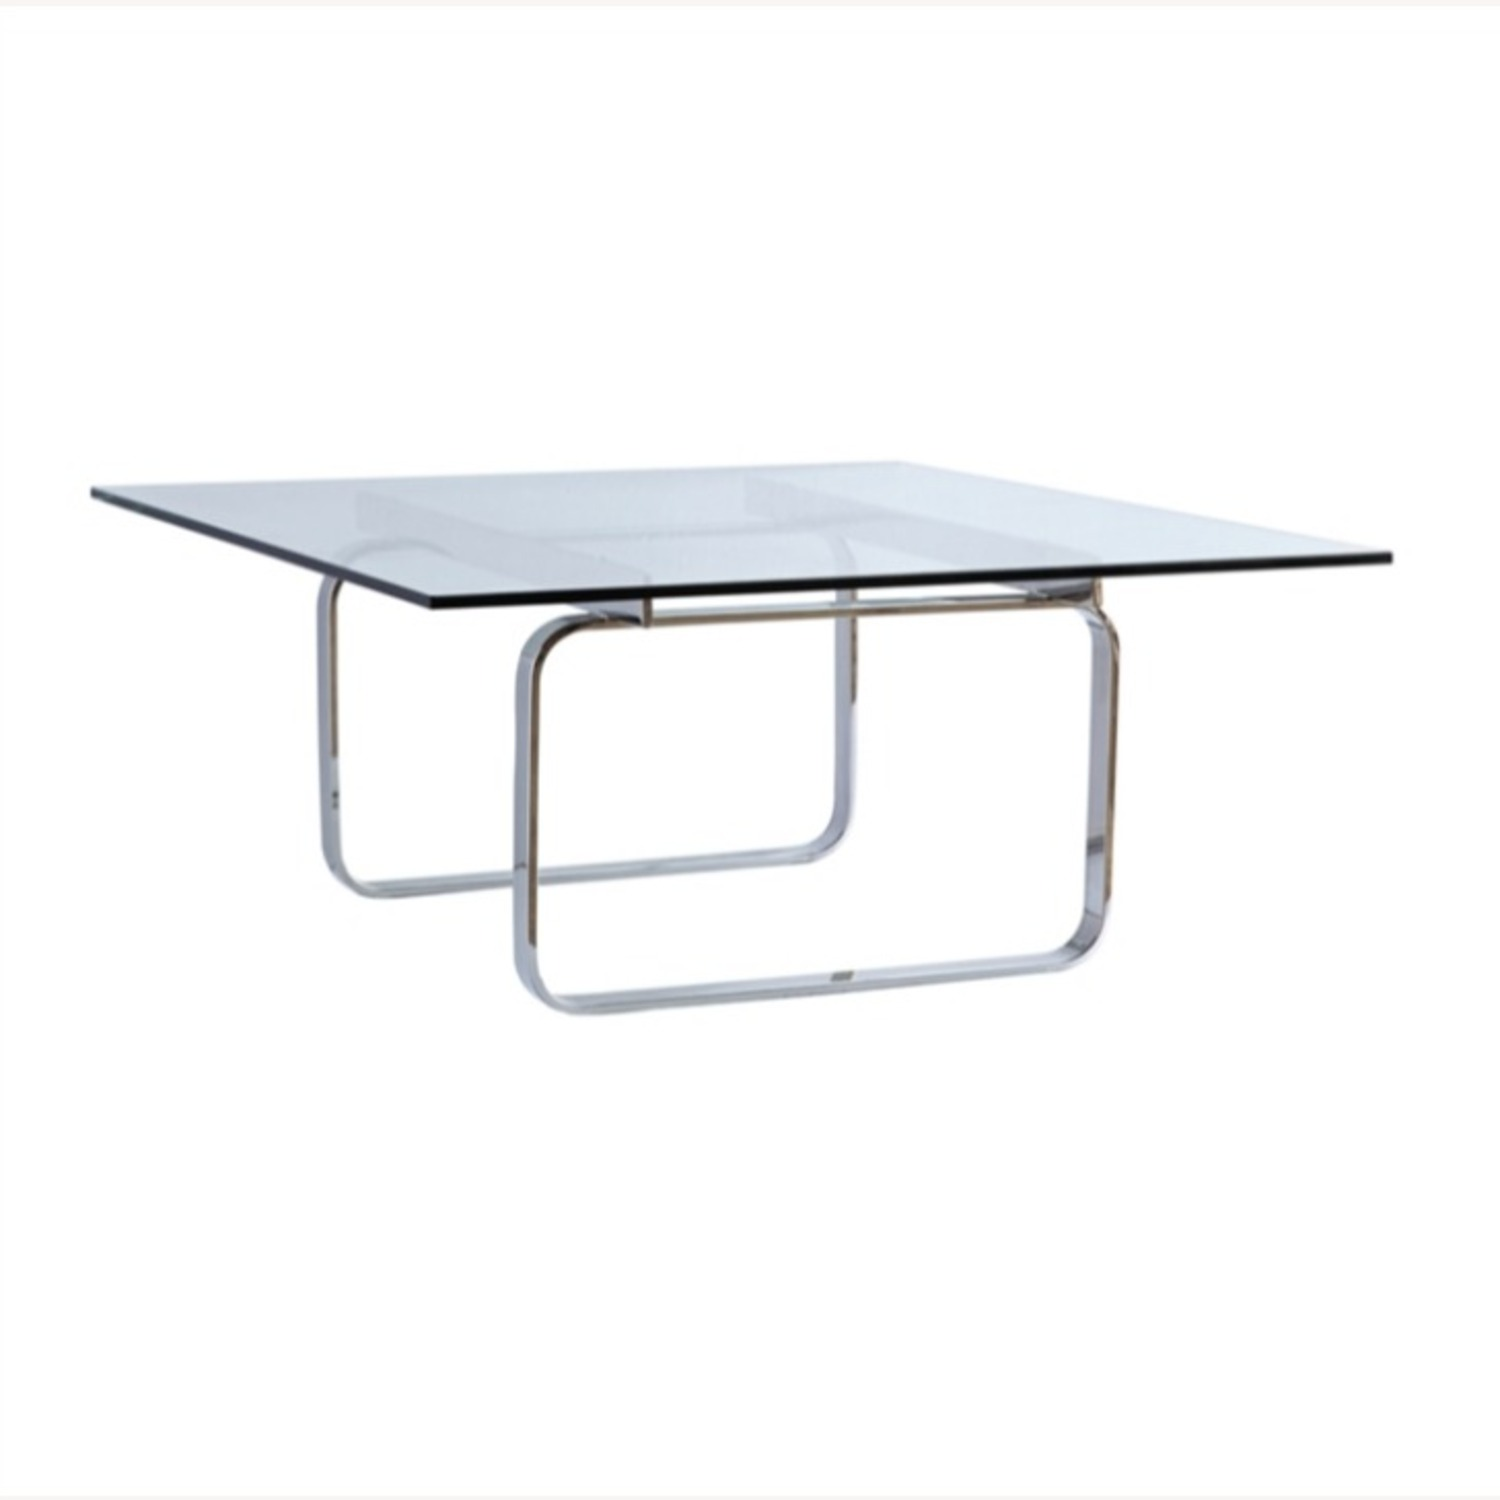 Coffee Table In Clear Stainless Steel - image-1